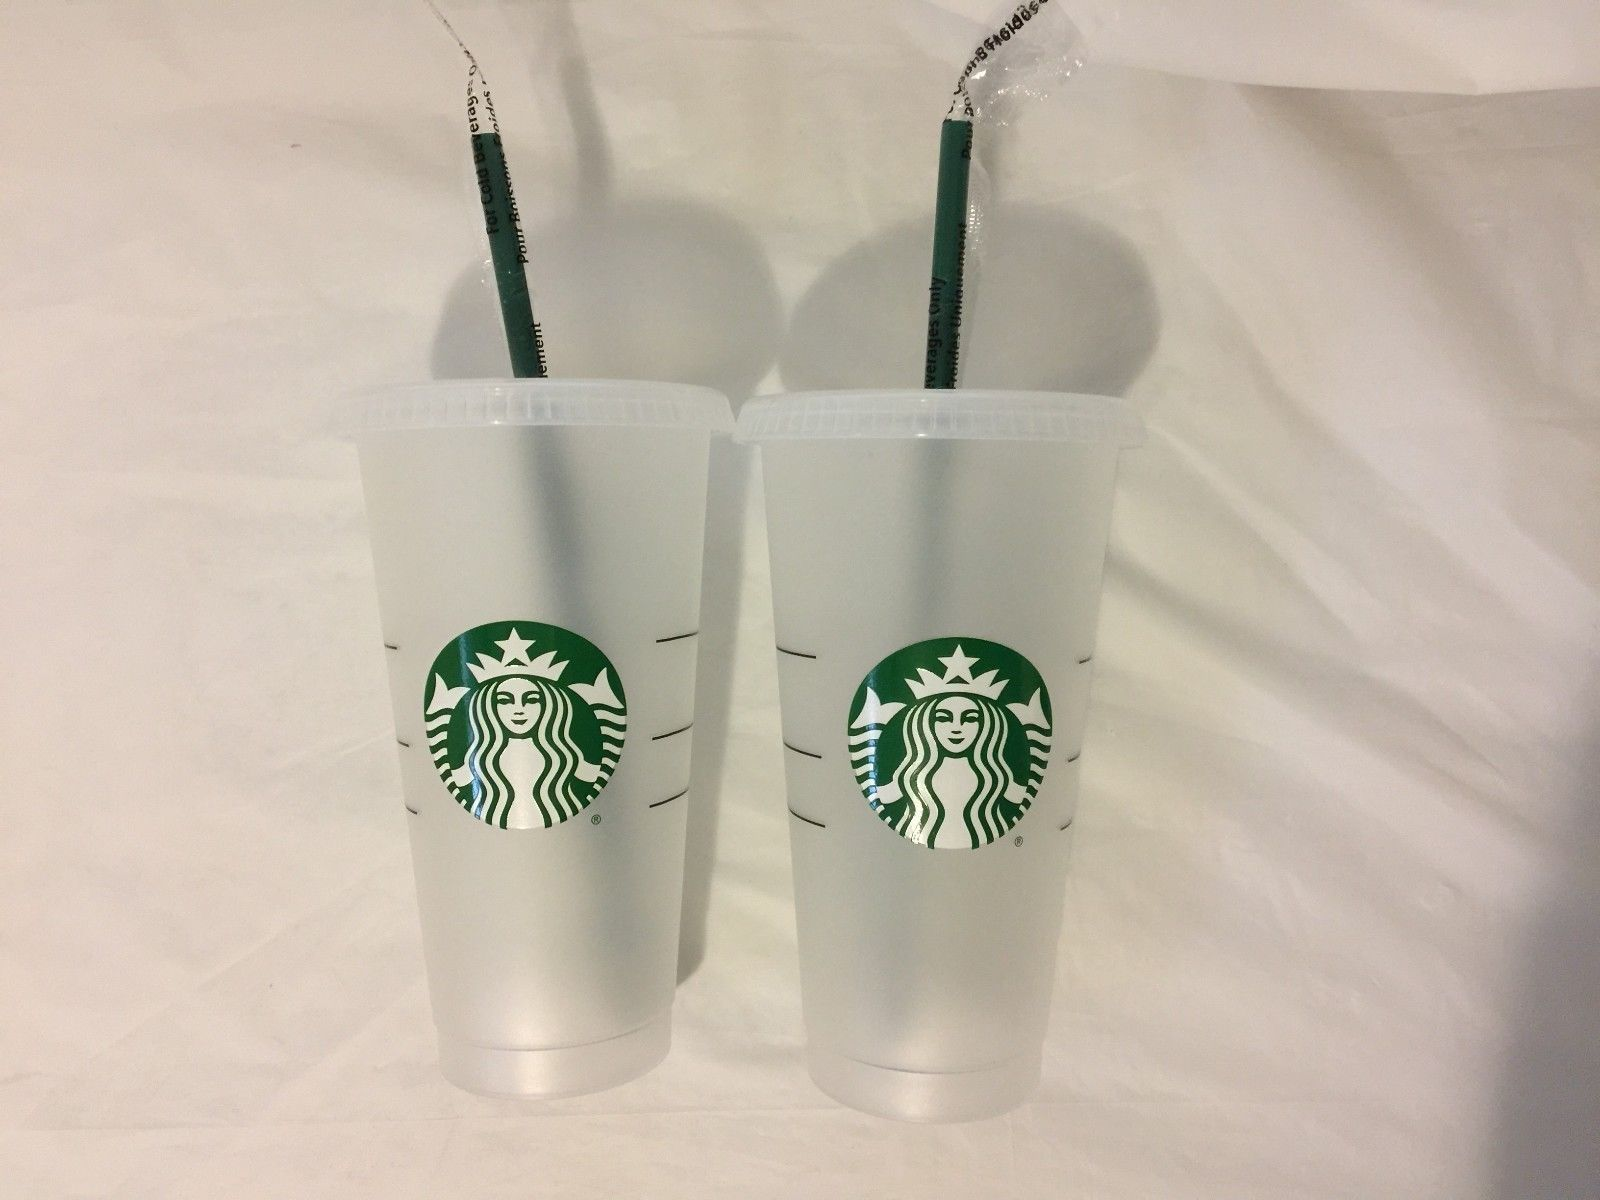 fec68bd14bd NEW 2018 Starbucks Reusable 24oz Cold Cup and 50 similar items